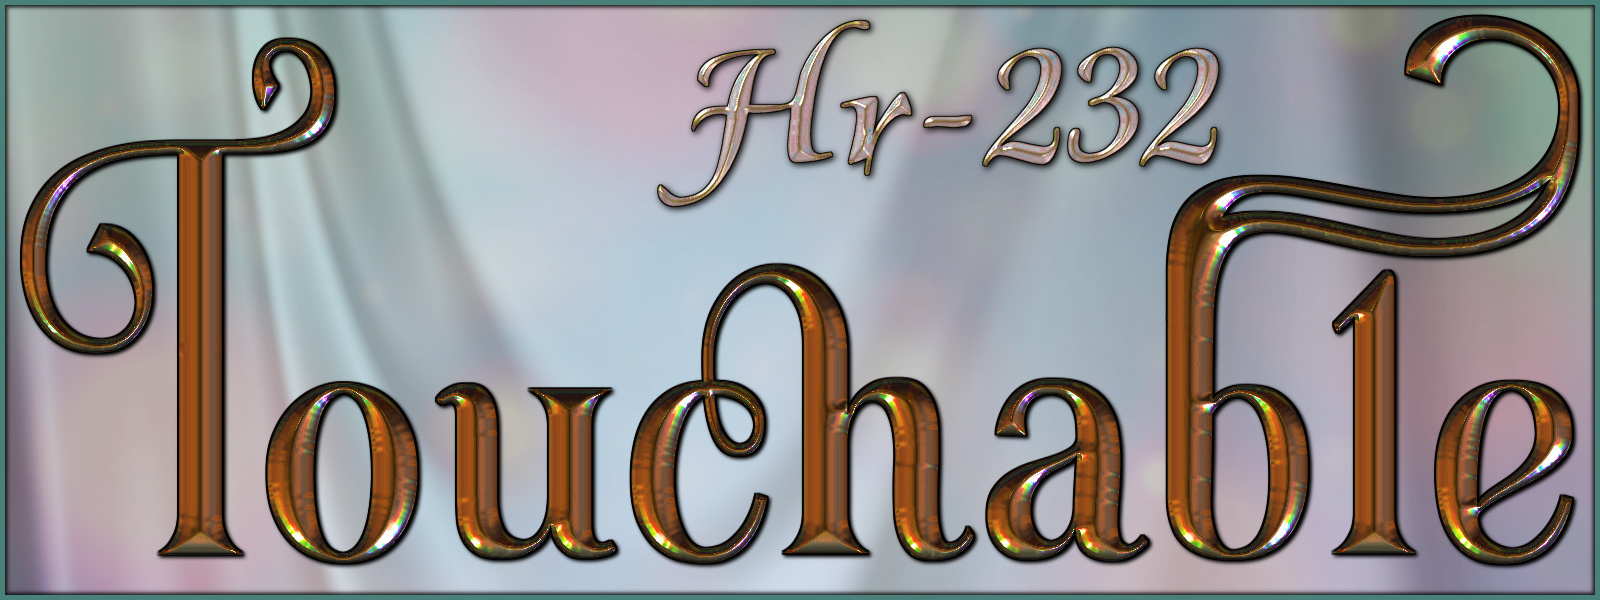 Touchable Hr-232 by -Wolfie-